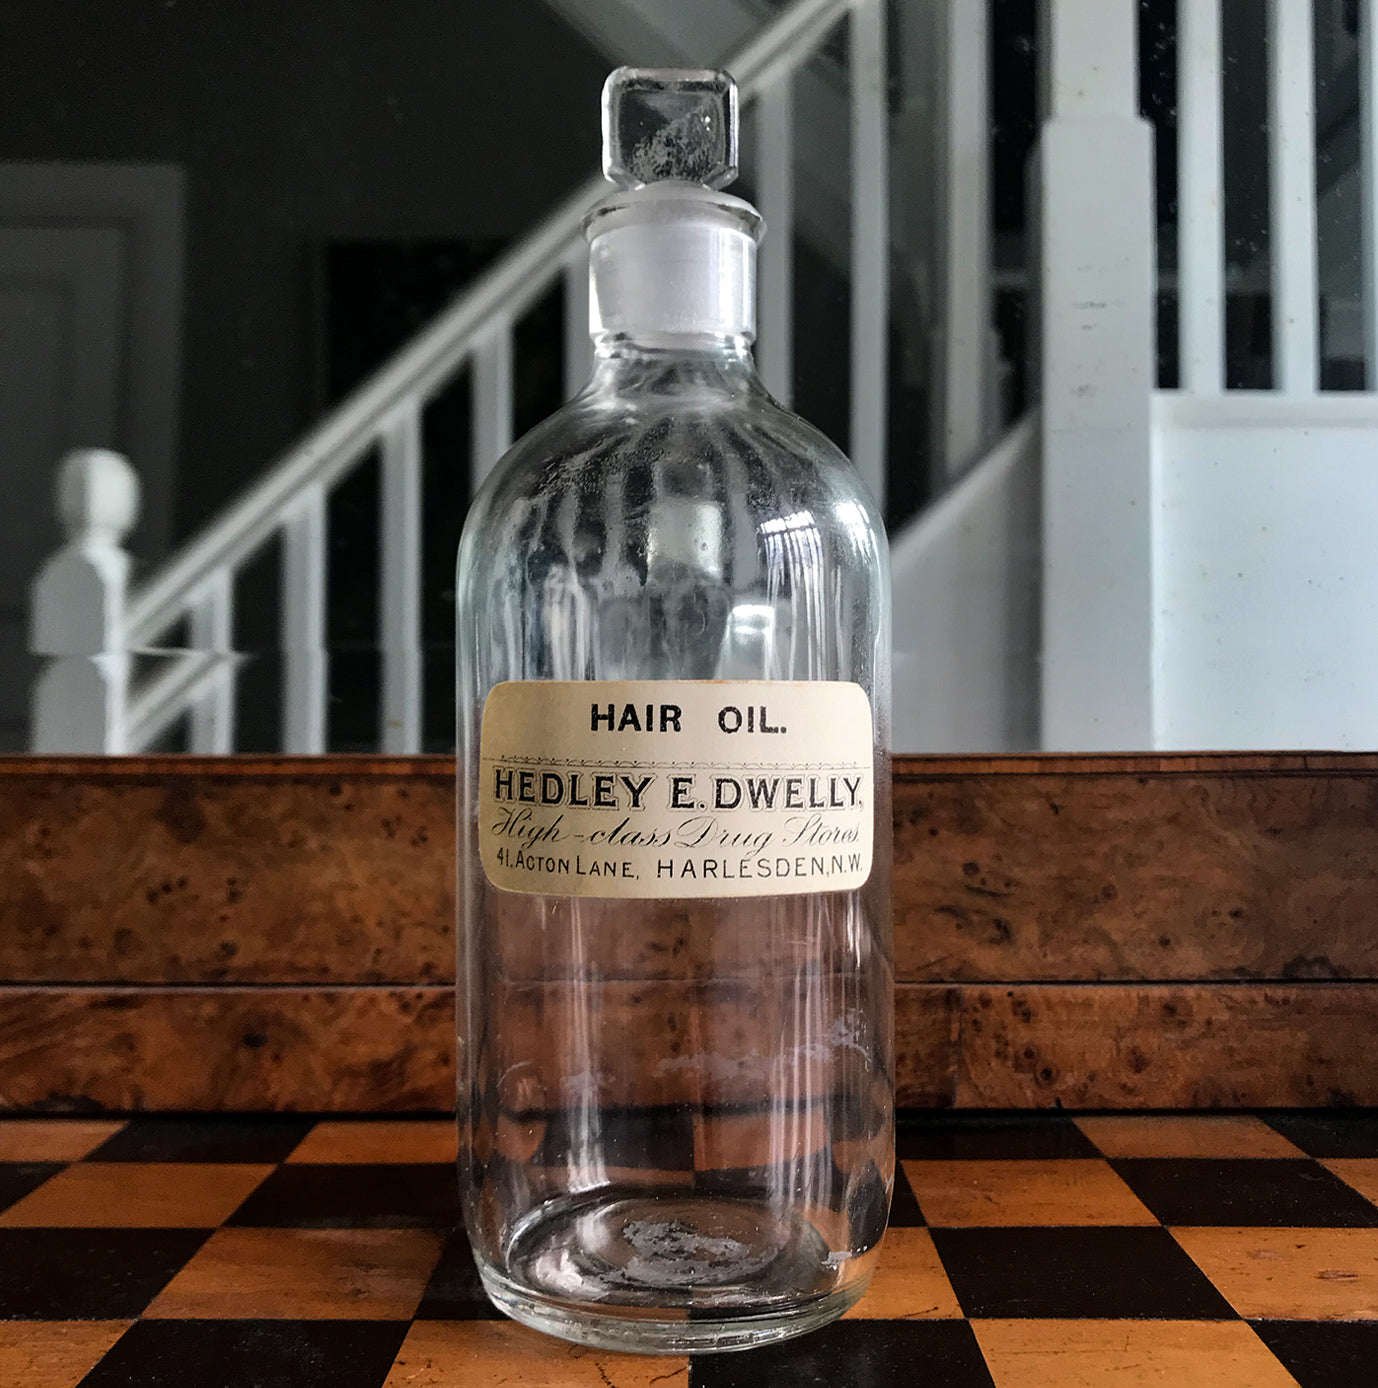 Vintage Clear Apothecary Bottle with an original paper label from Hedley E. Dwelly, High-Class Drug Stores, 41, Acton Lane, Harlesden. N.W. - SHOP NOW - www.intovintage.co.uk